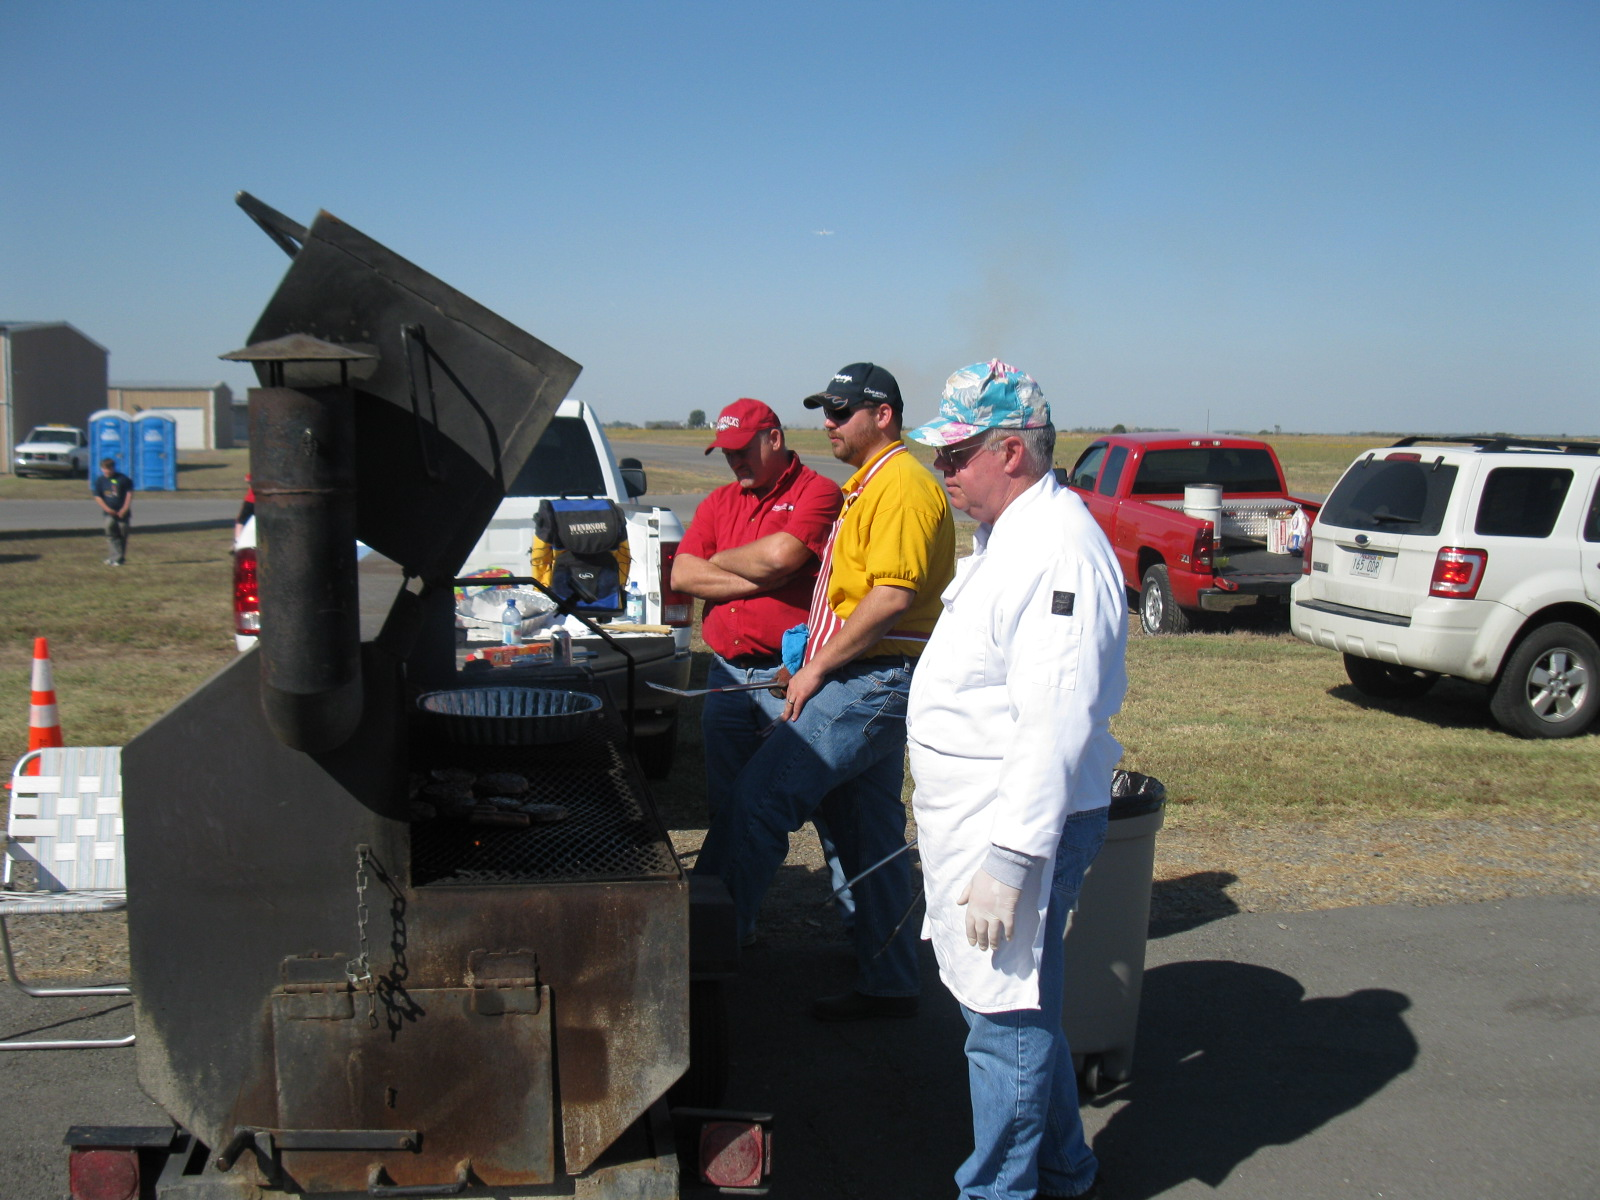 Carlisle Lions grill hamburgers and hot dogs for a hungry crowd at the second annual Carlisle Airport Day.